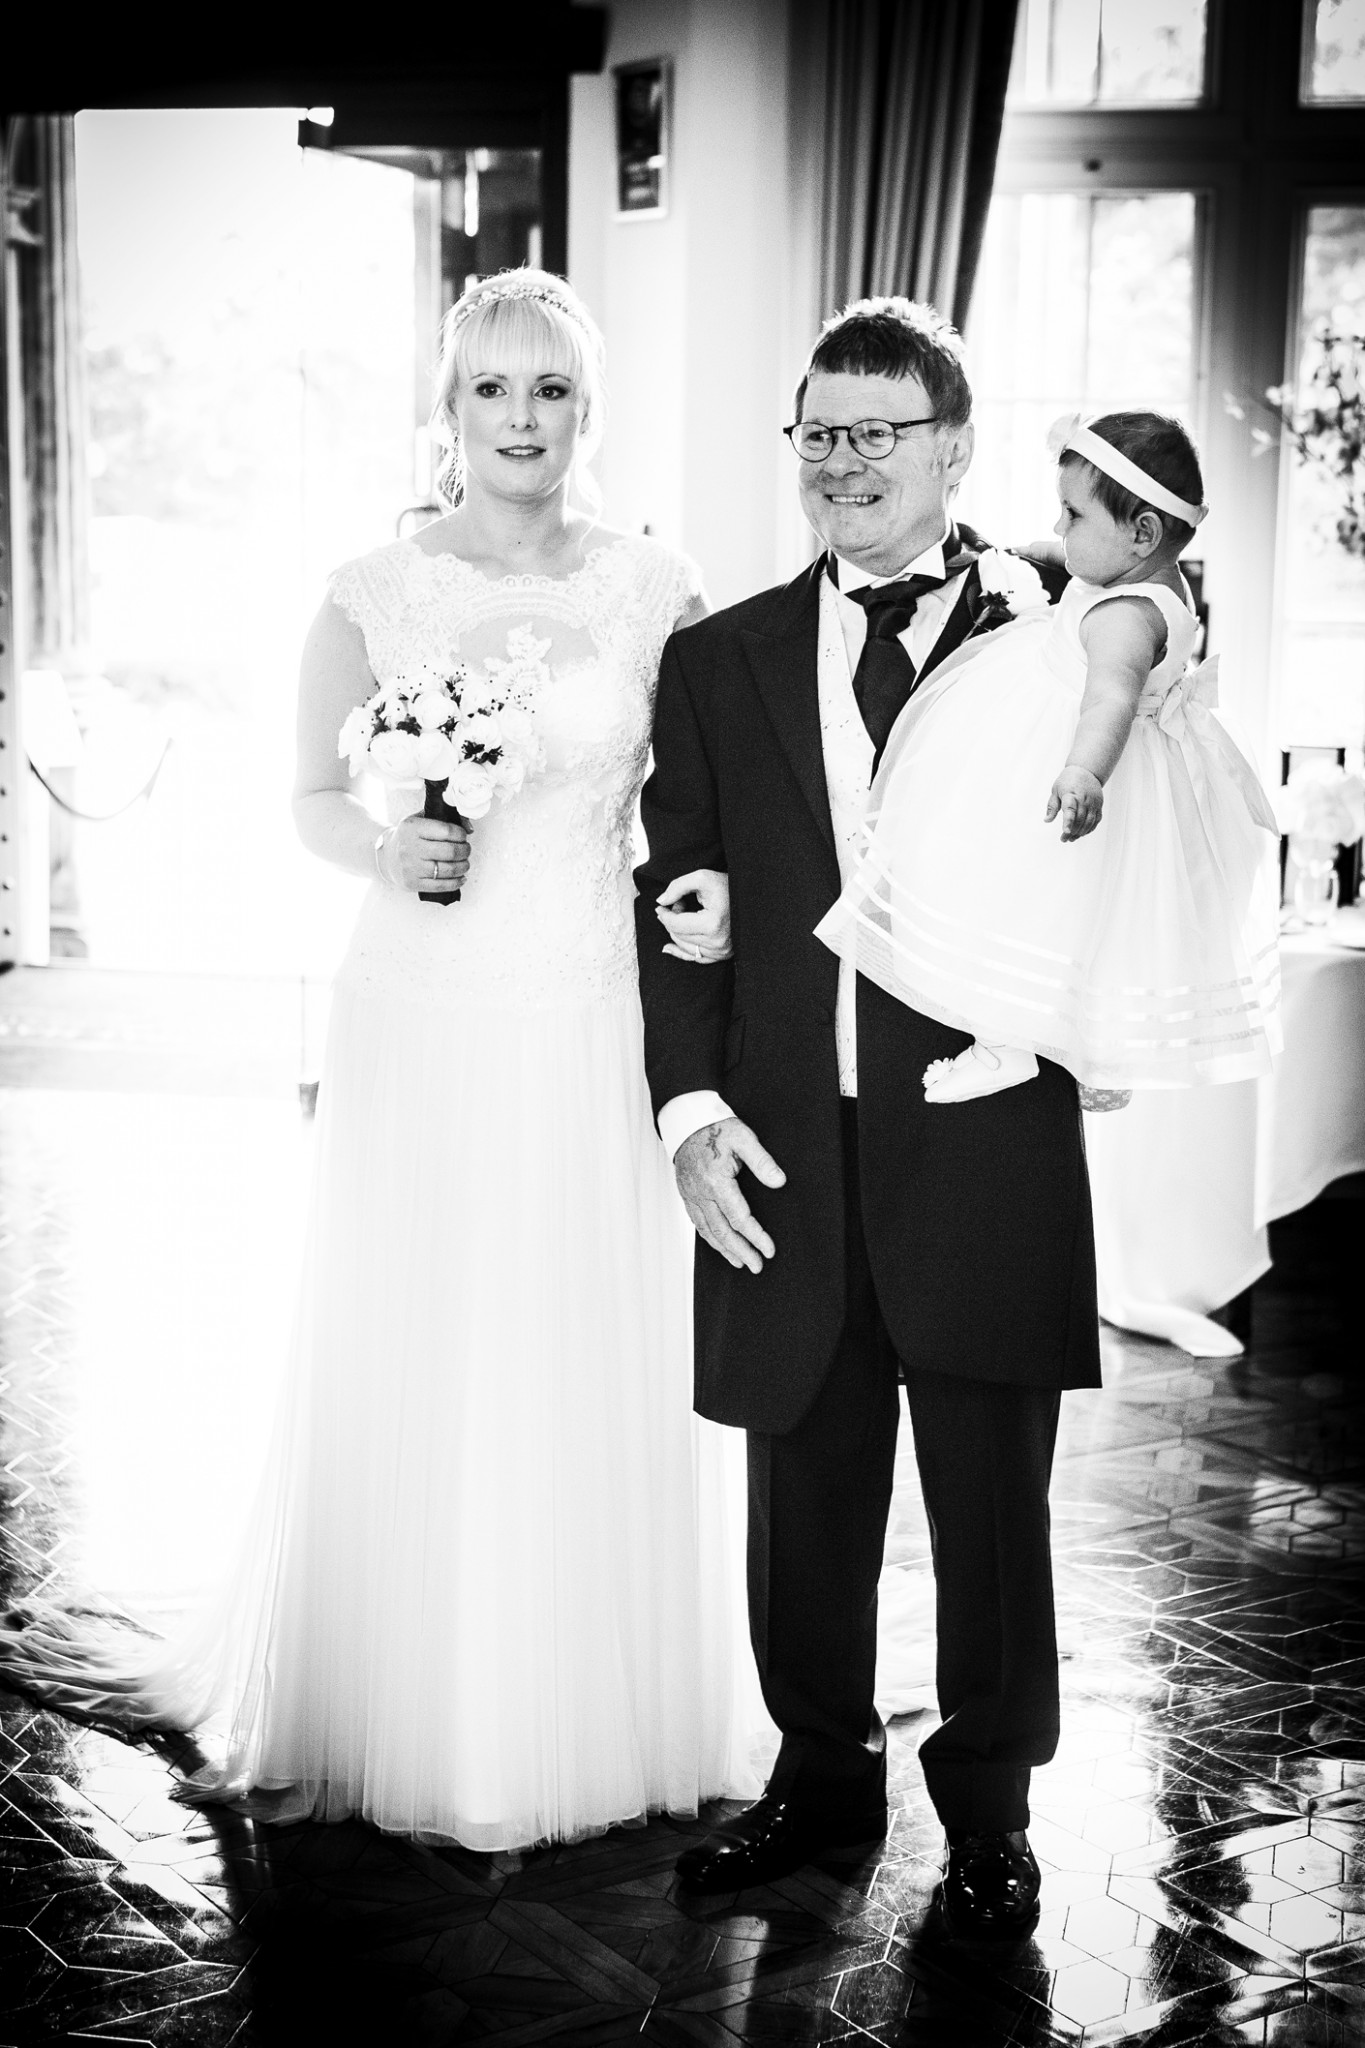 wedding-photography-before-the-ceremony-at-cranage-hall-cheshire